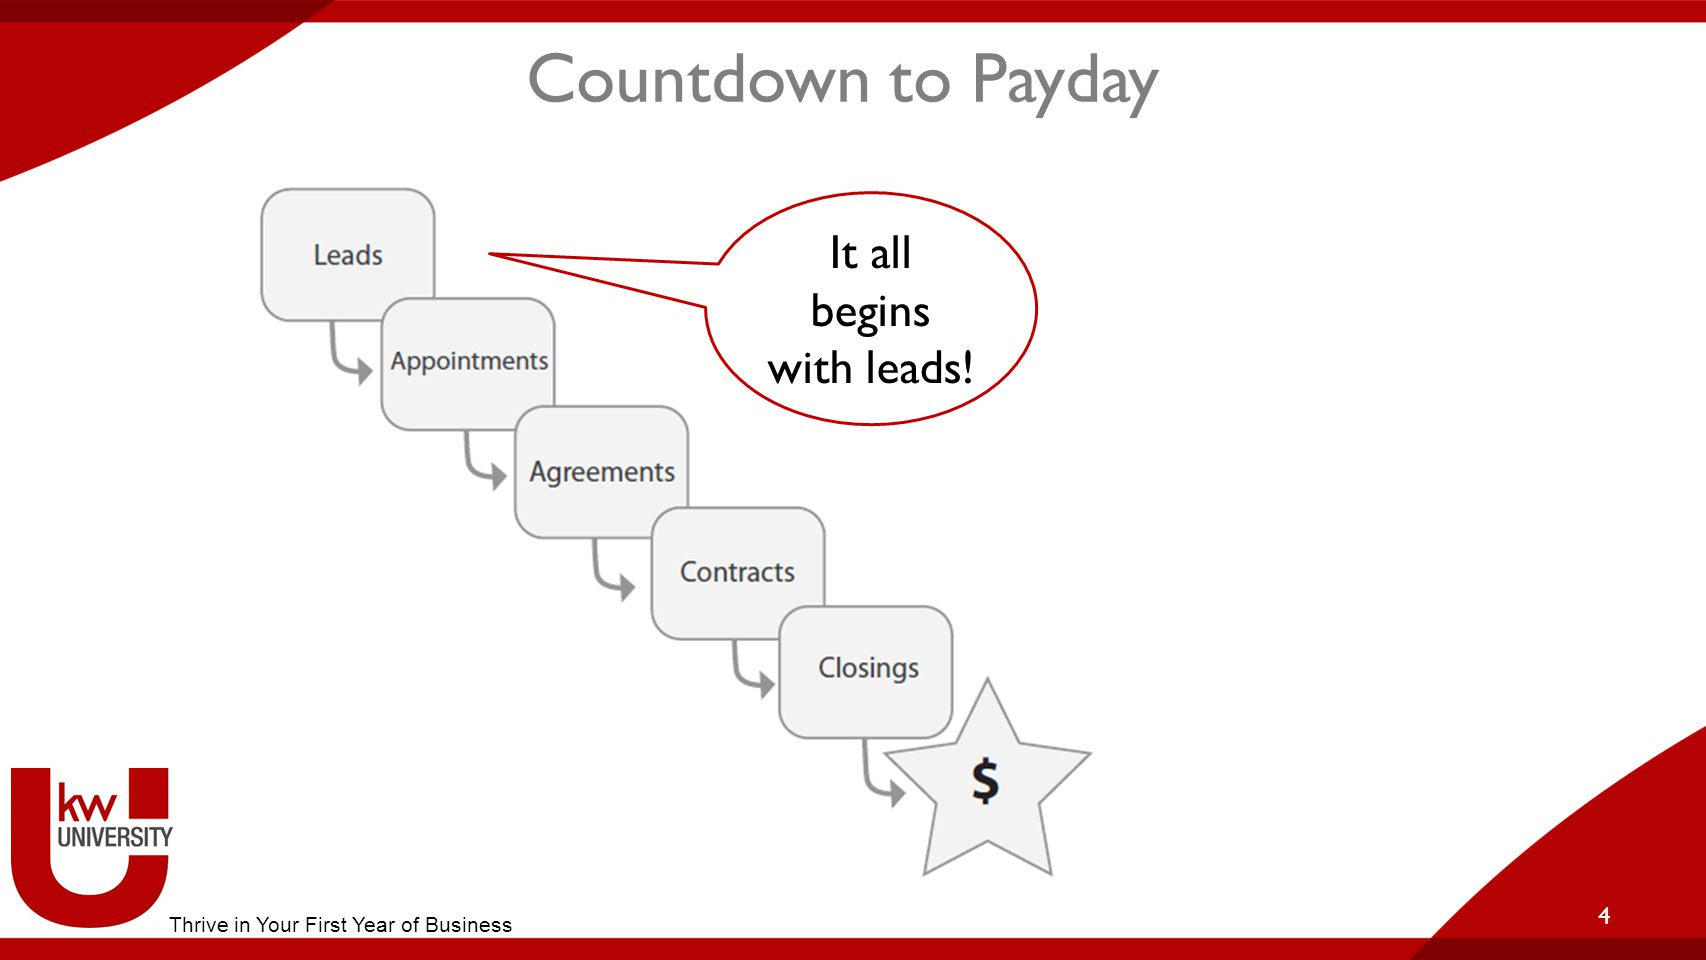 Countdown to Payday 4 It all begins with leads! Thrive in Your First Year of Business